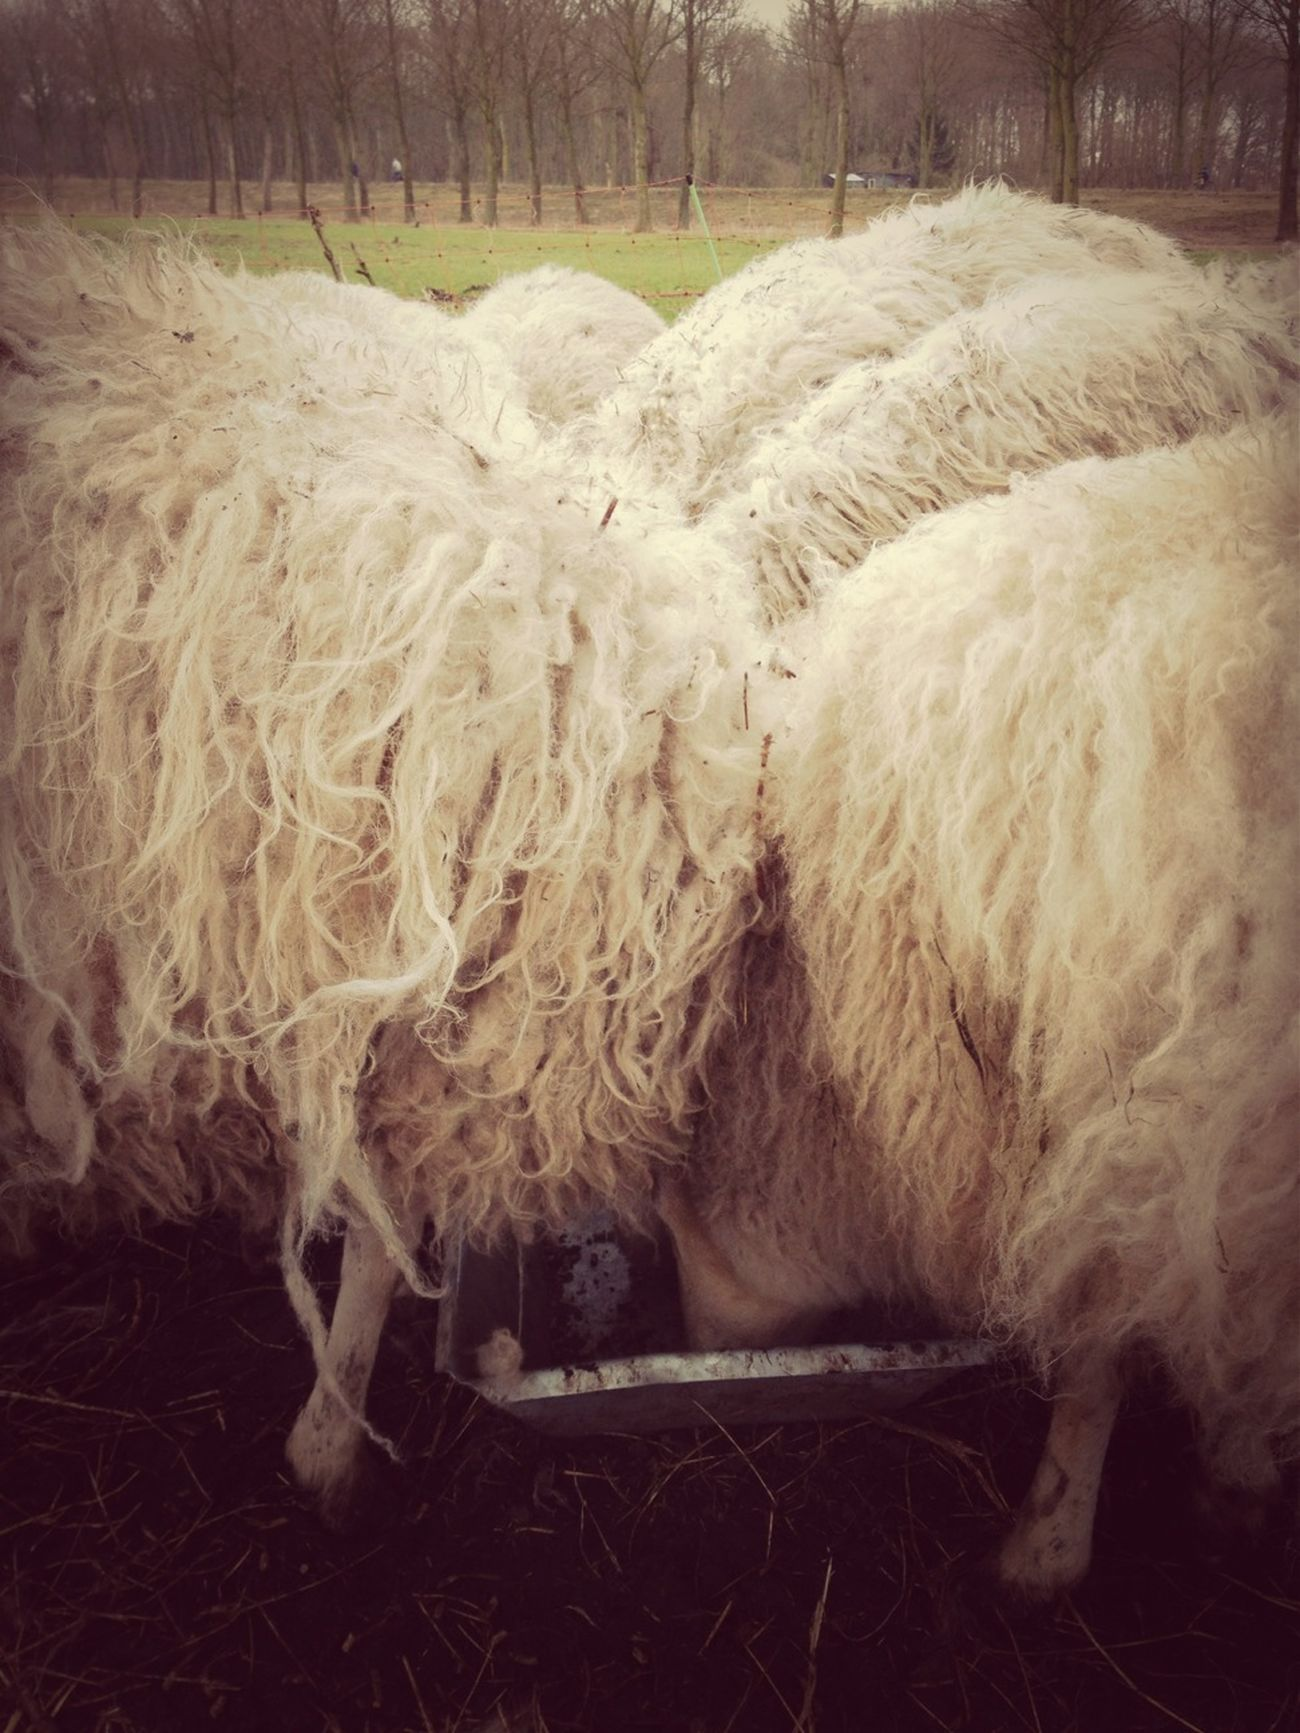 Sheep@Work